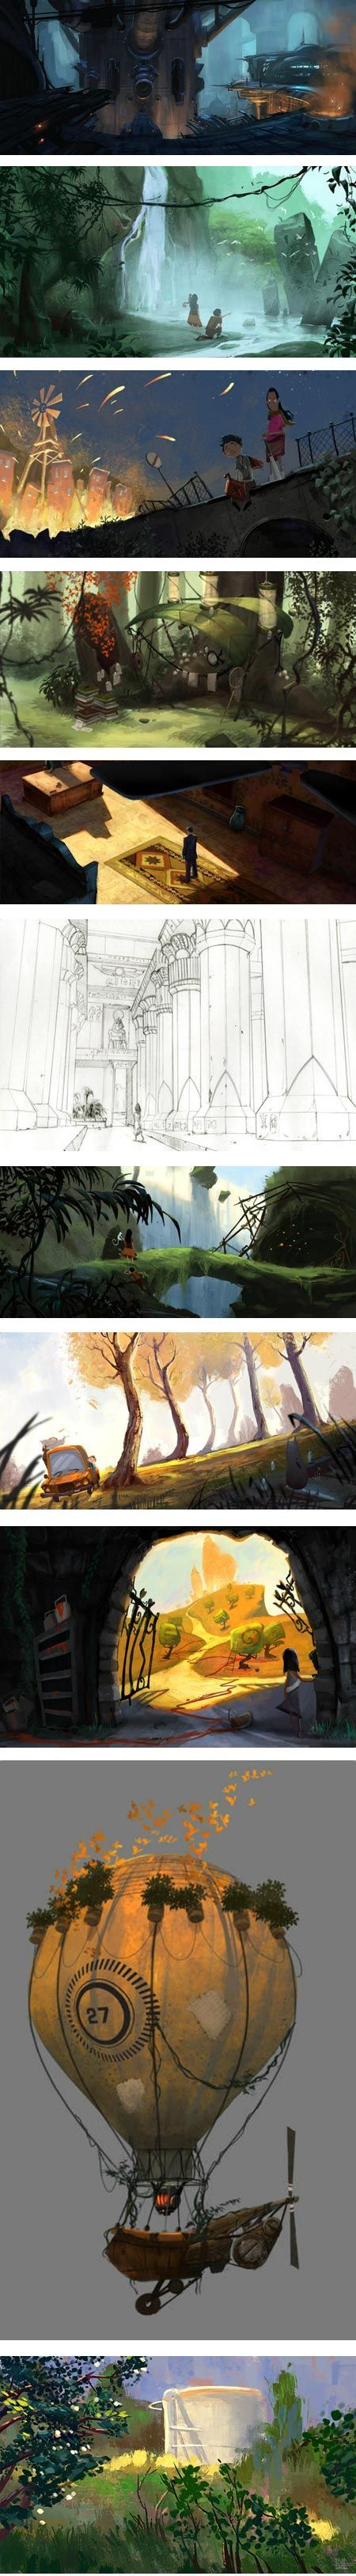 Erik D. Martin is a visual development artist based in Los Angeles and currently working for Disney Interactive.: